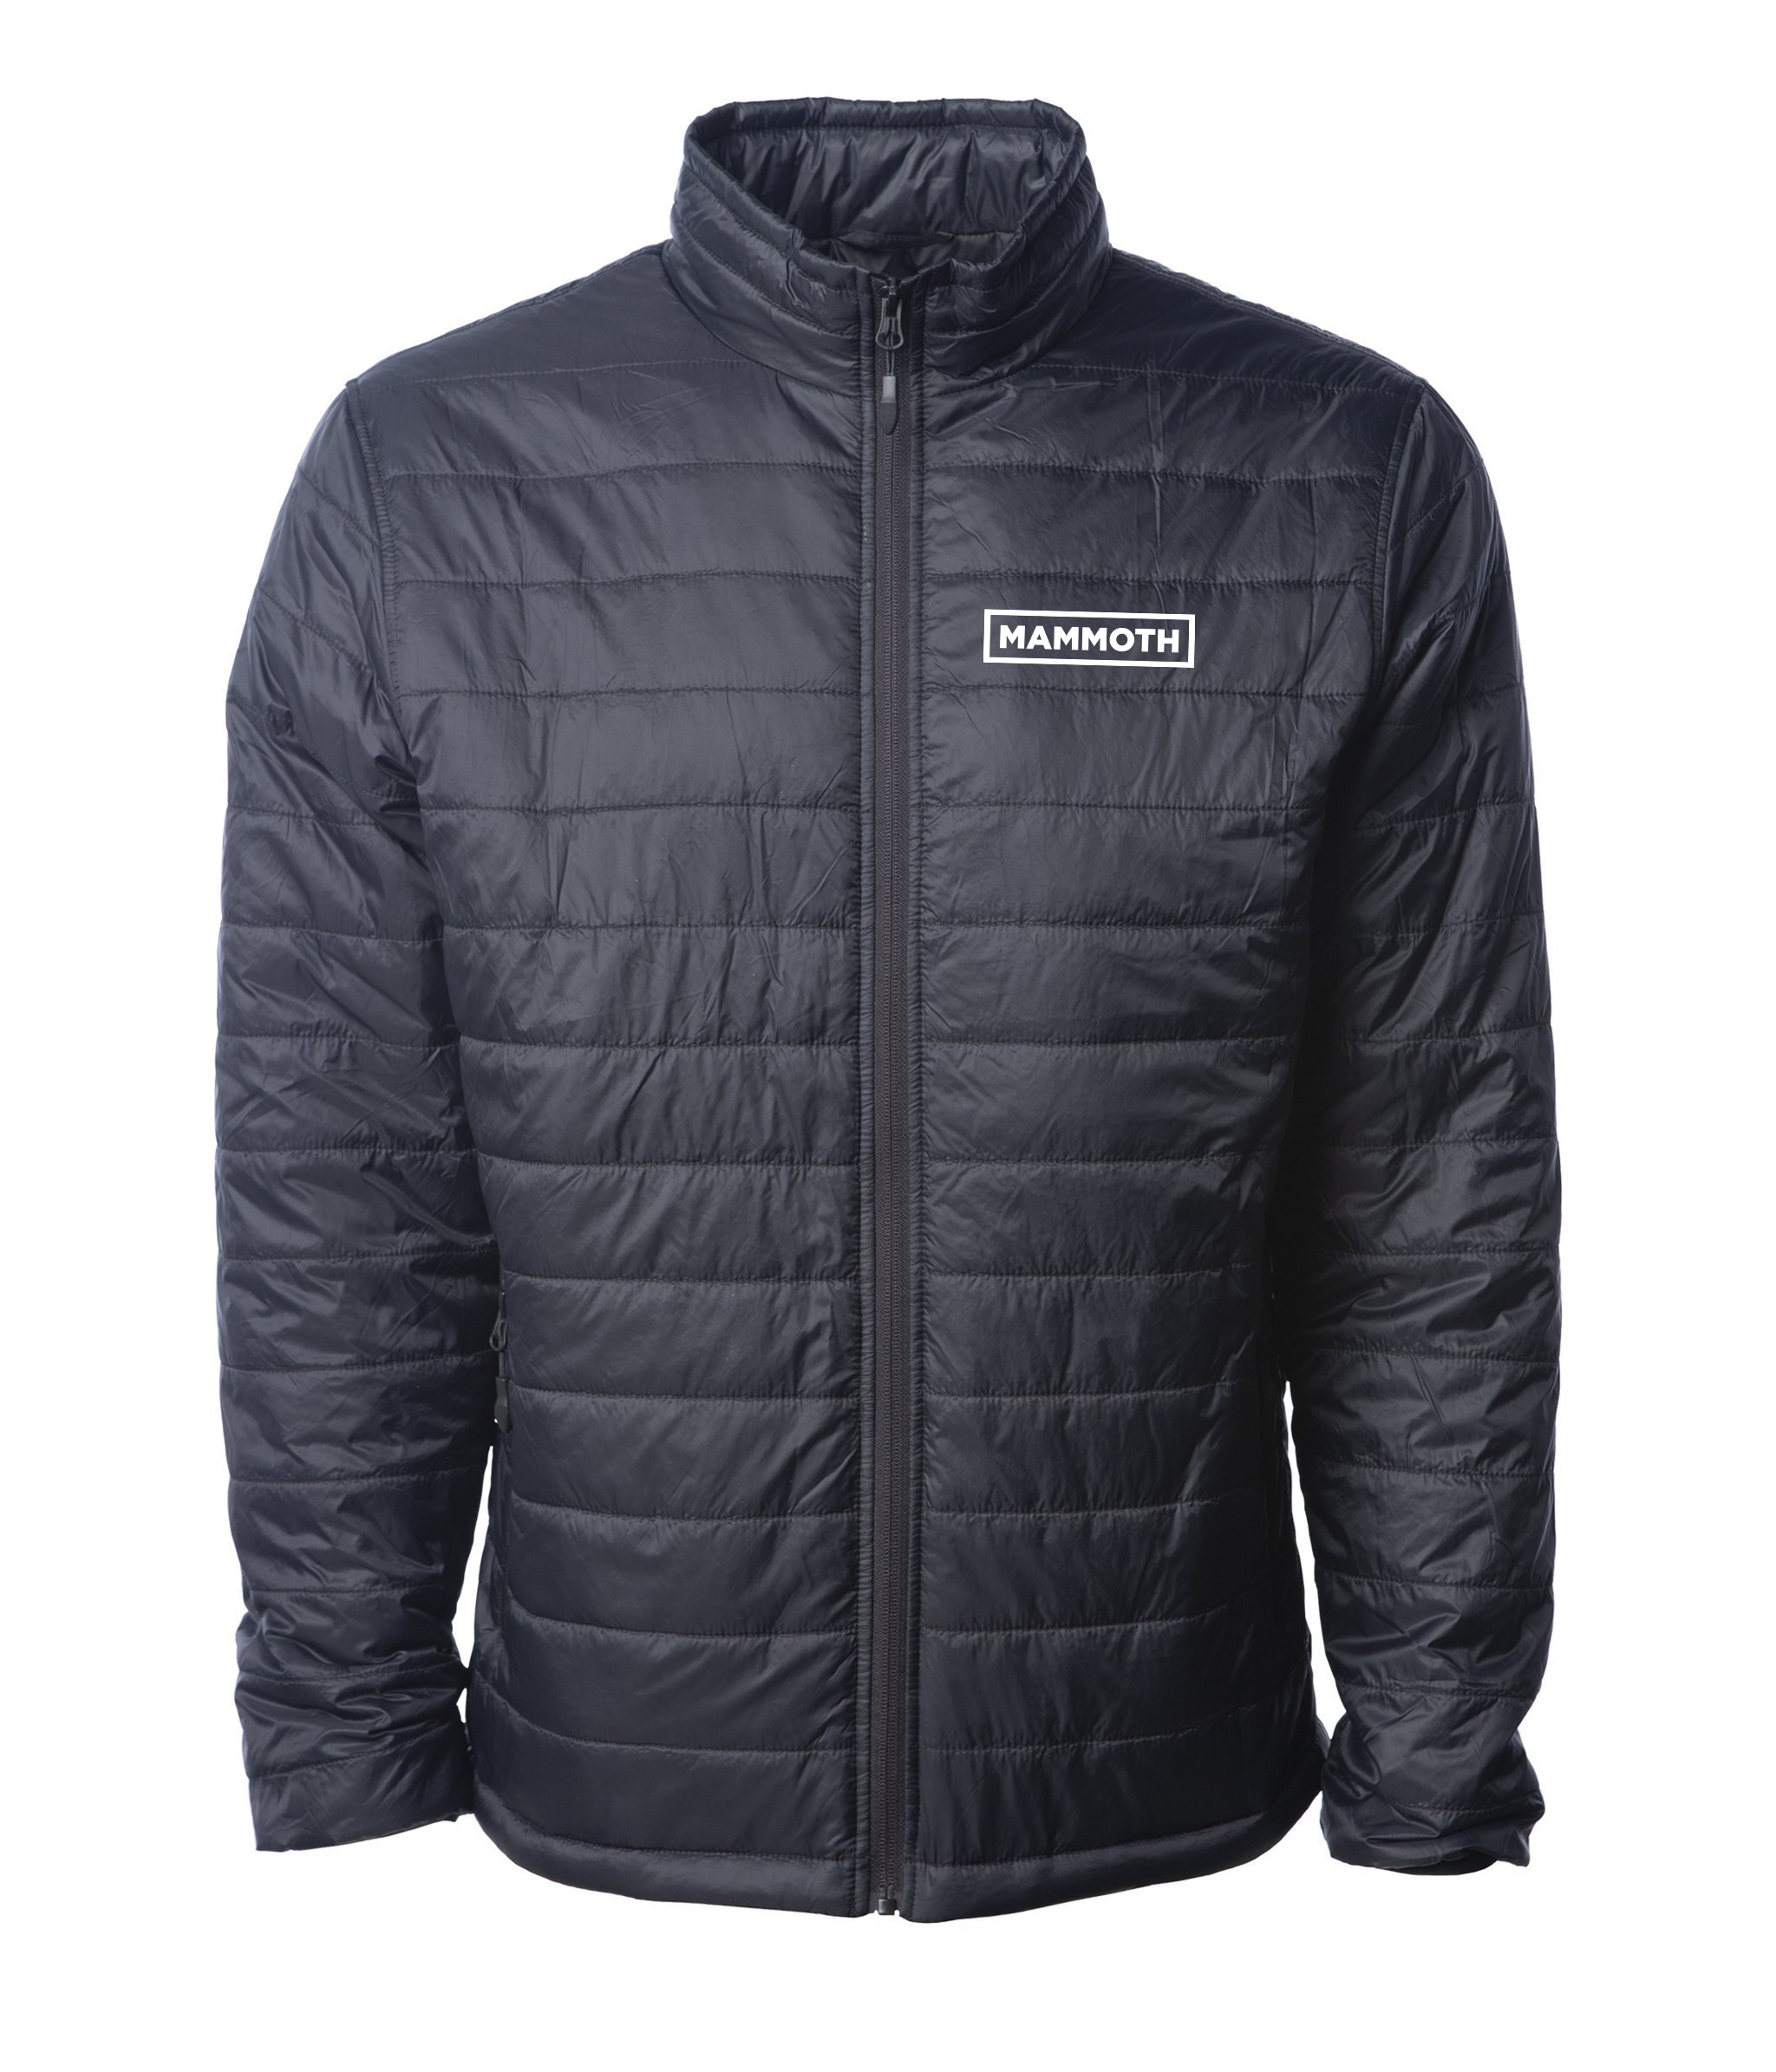 Mammoth Puffy Jacket